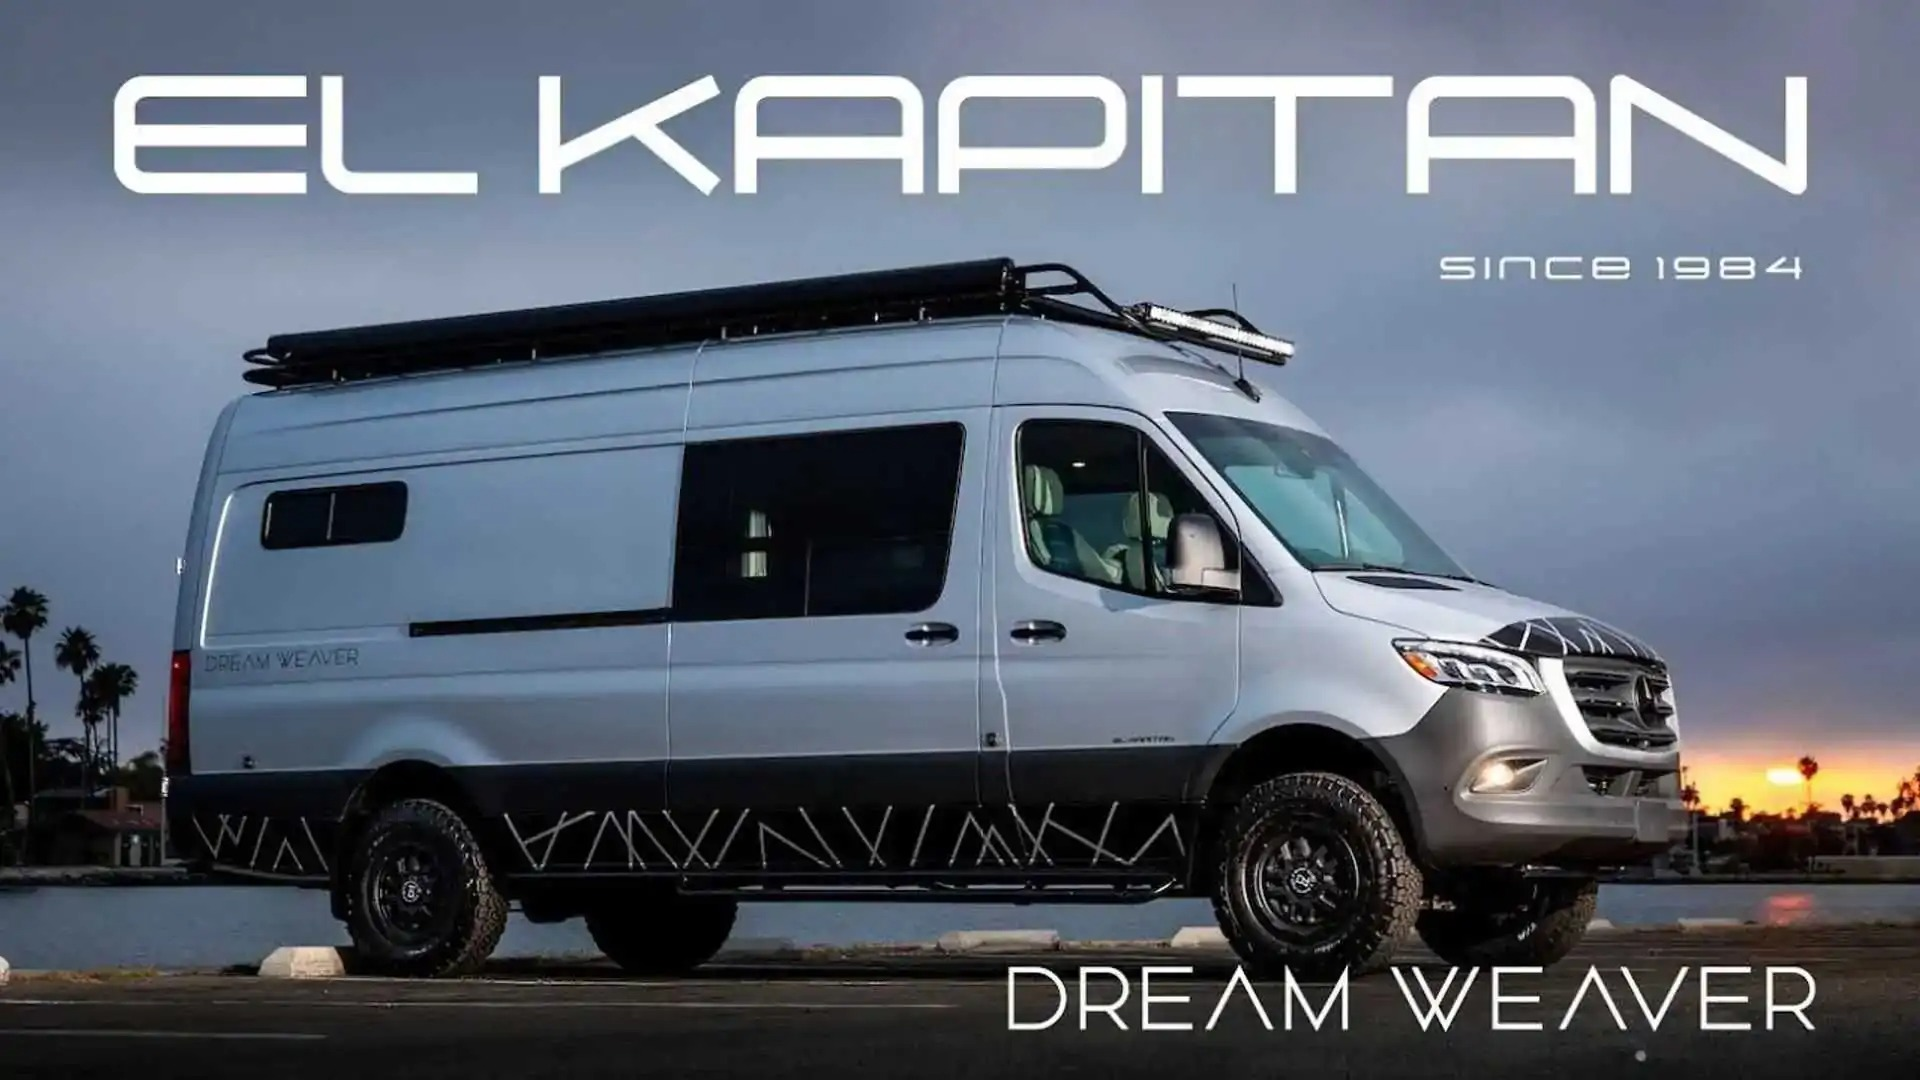 Creating an ideal RV for traveling is a challenging task, but it looks like El Kapitan Van knows what it is doing with its Dream Weaver campervan.